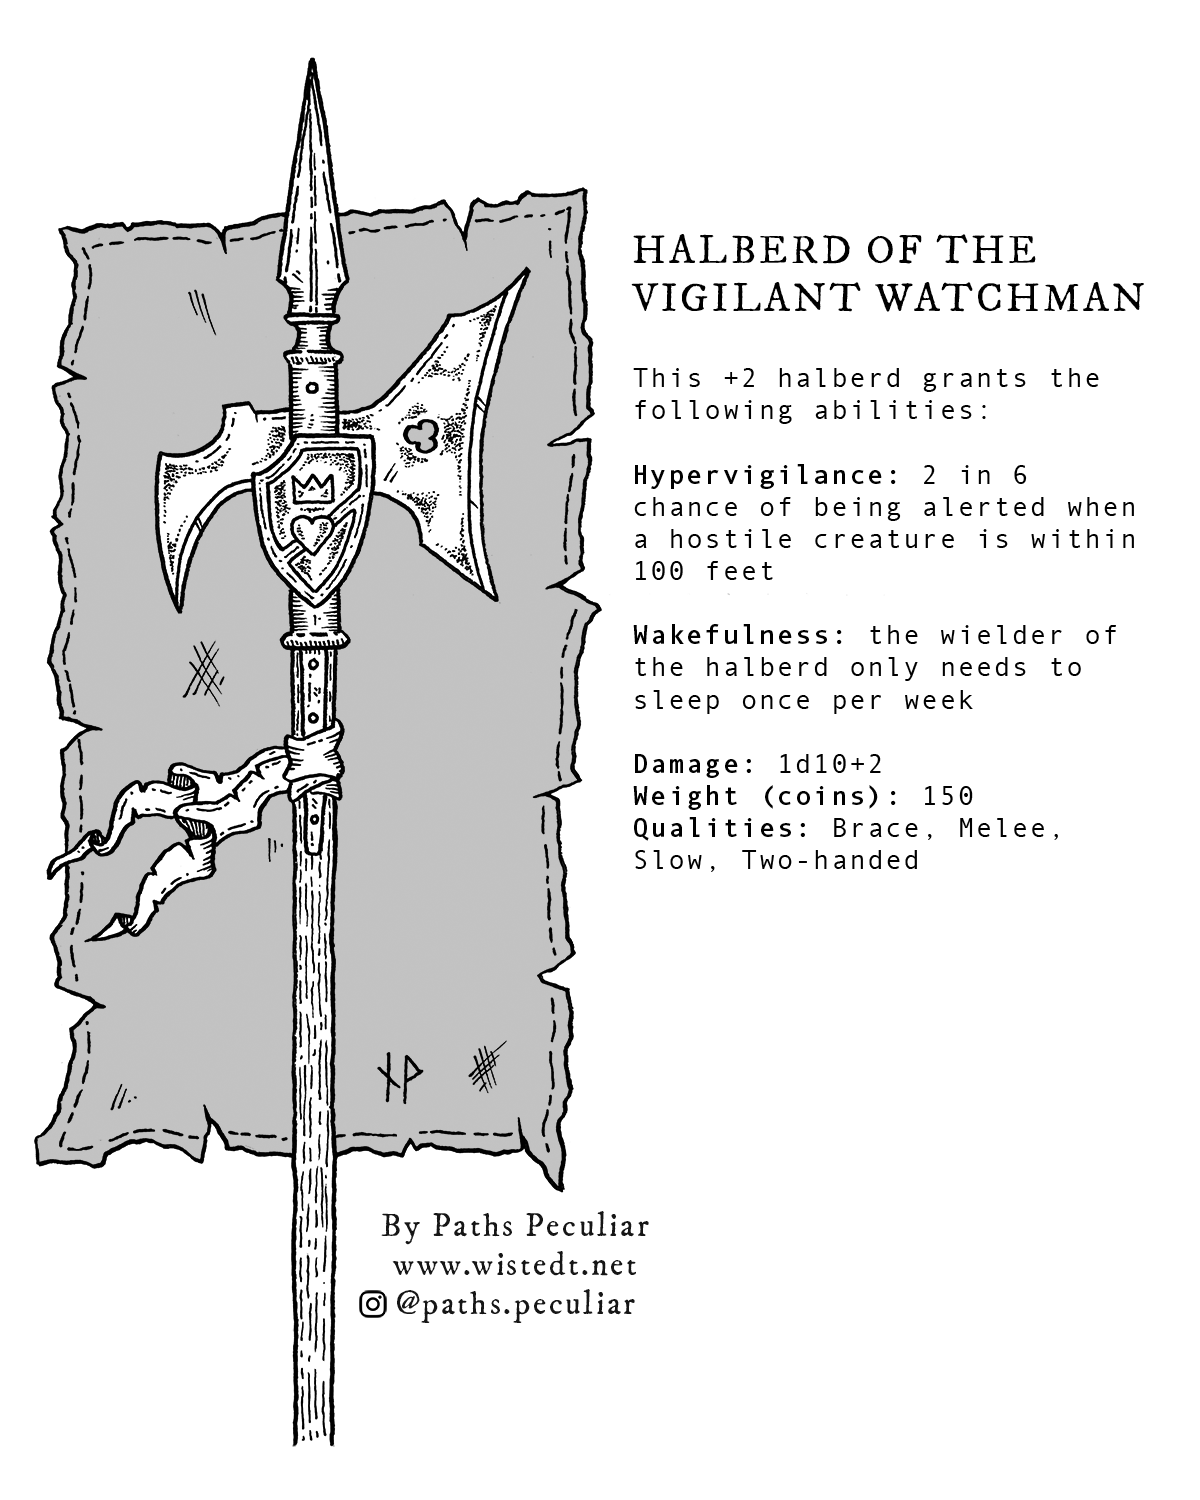 Halberd of the vigilant watchman